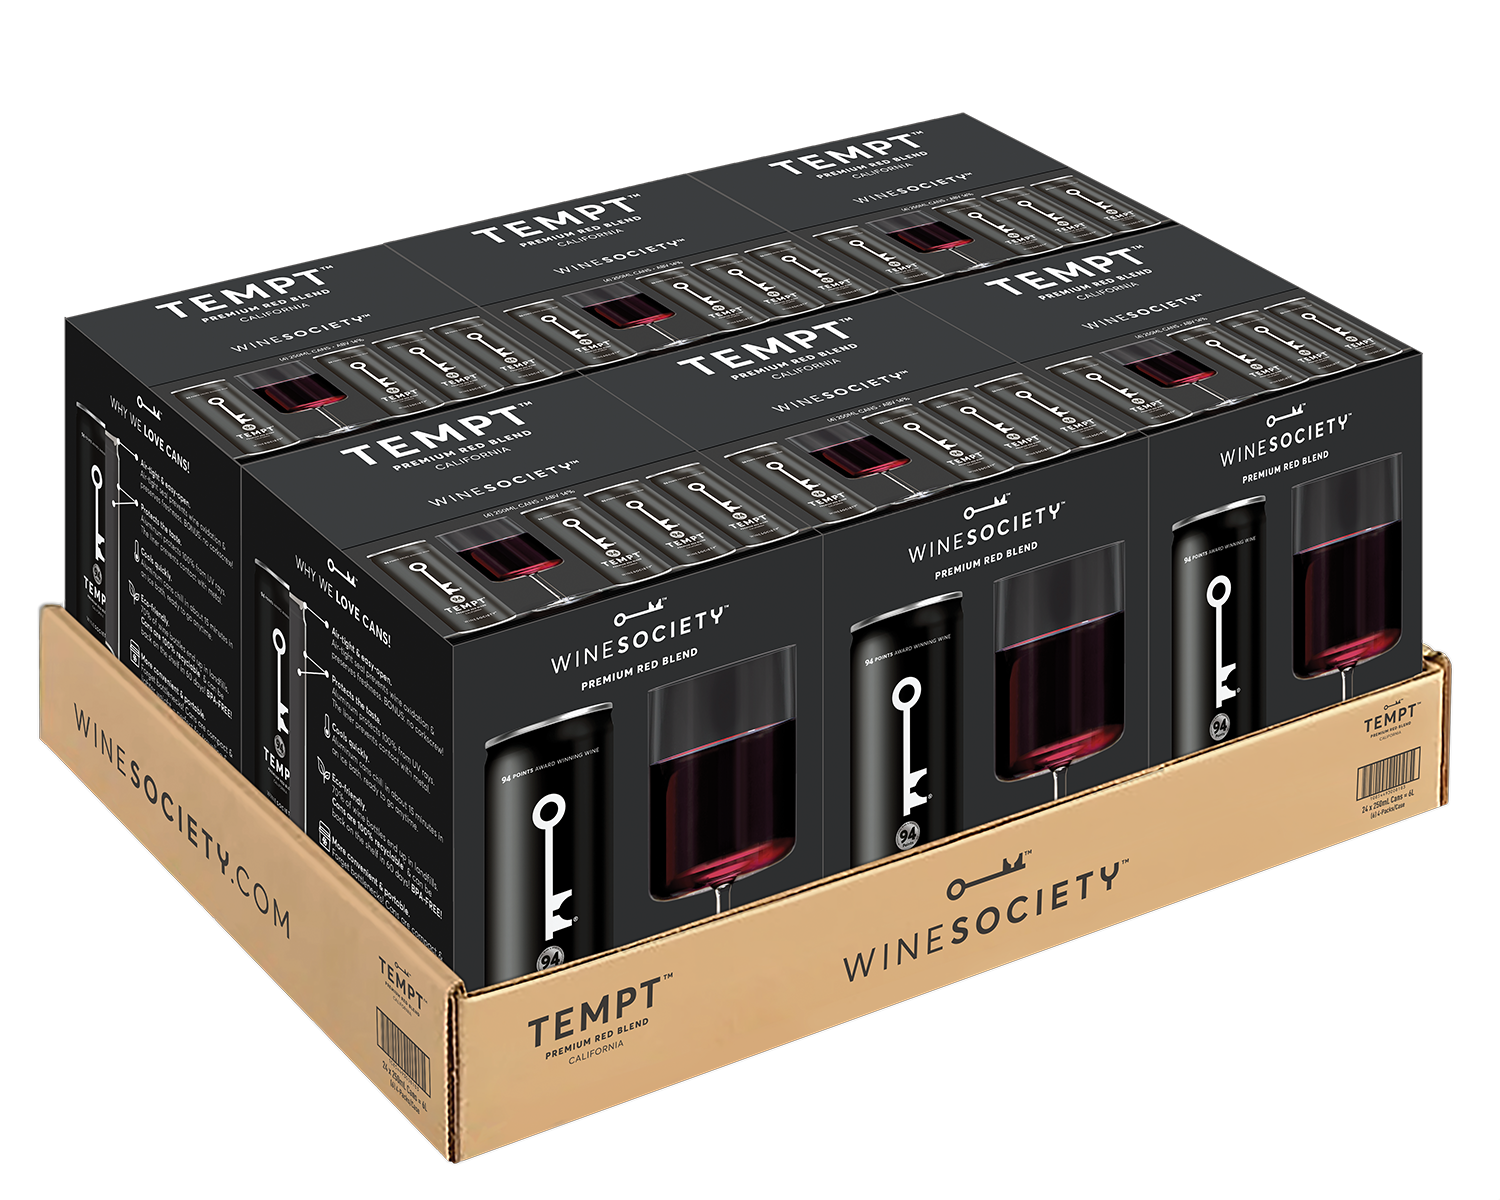 Download an image of TEMPT 250mL 4-pack Trays